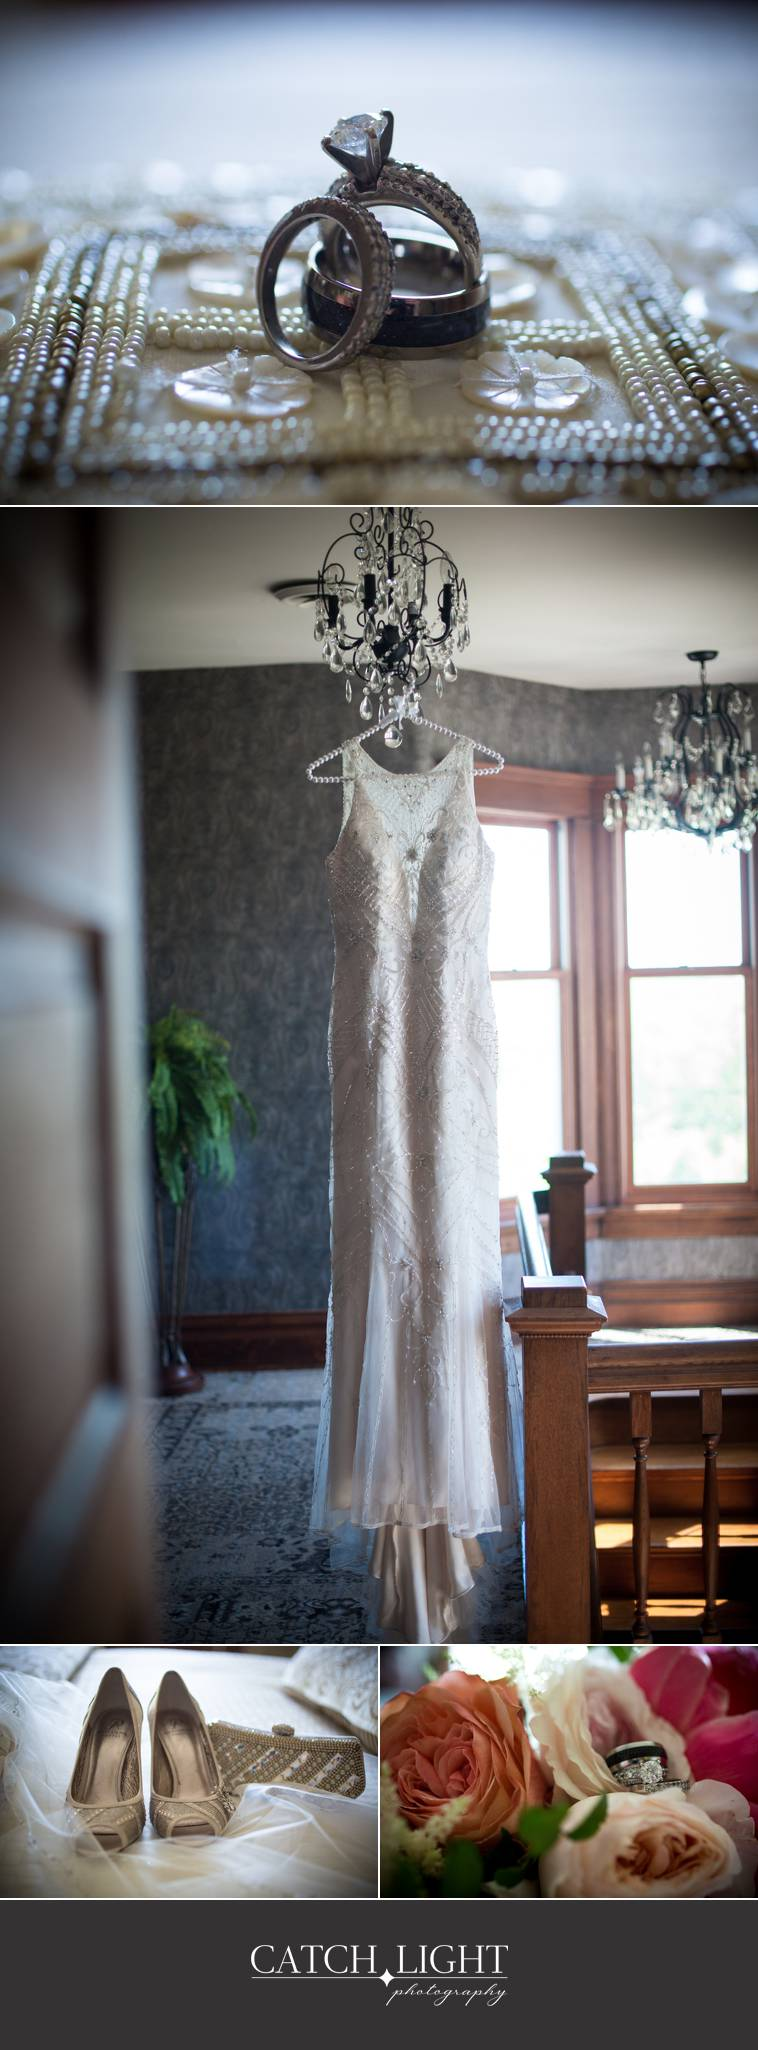 photos of rings, dress hanging from chandileer, shoes, and flowers